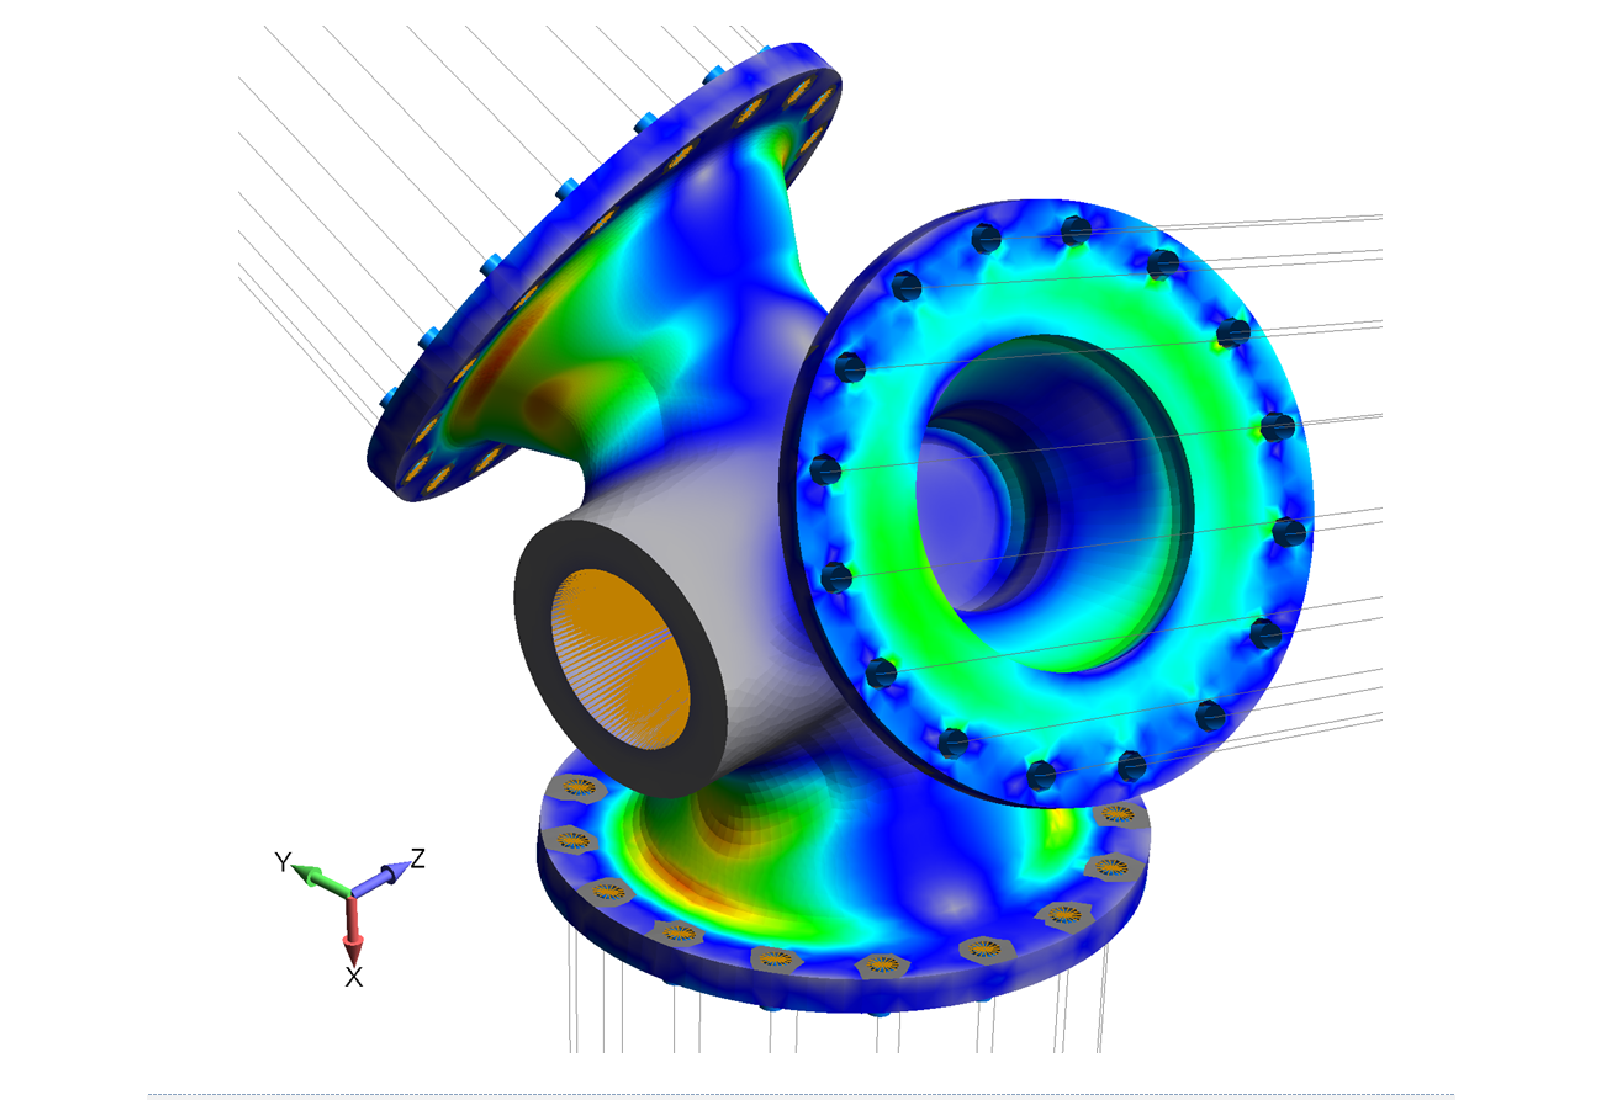 Figure 14: FEA simulation of 50 kW wind turbine blade hub.  The lines are rigid links (RBE2) used to apply the blade loads onto the hub.